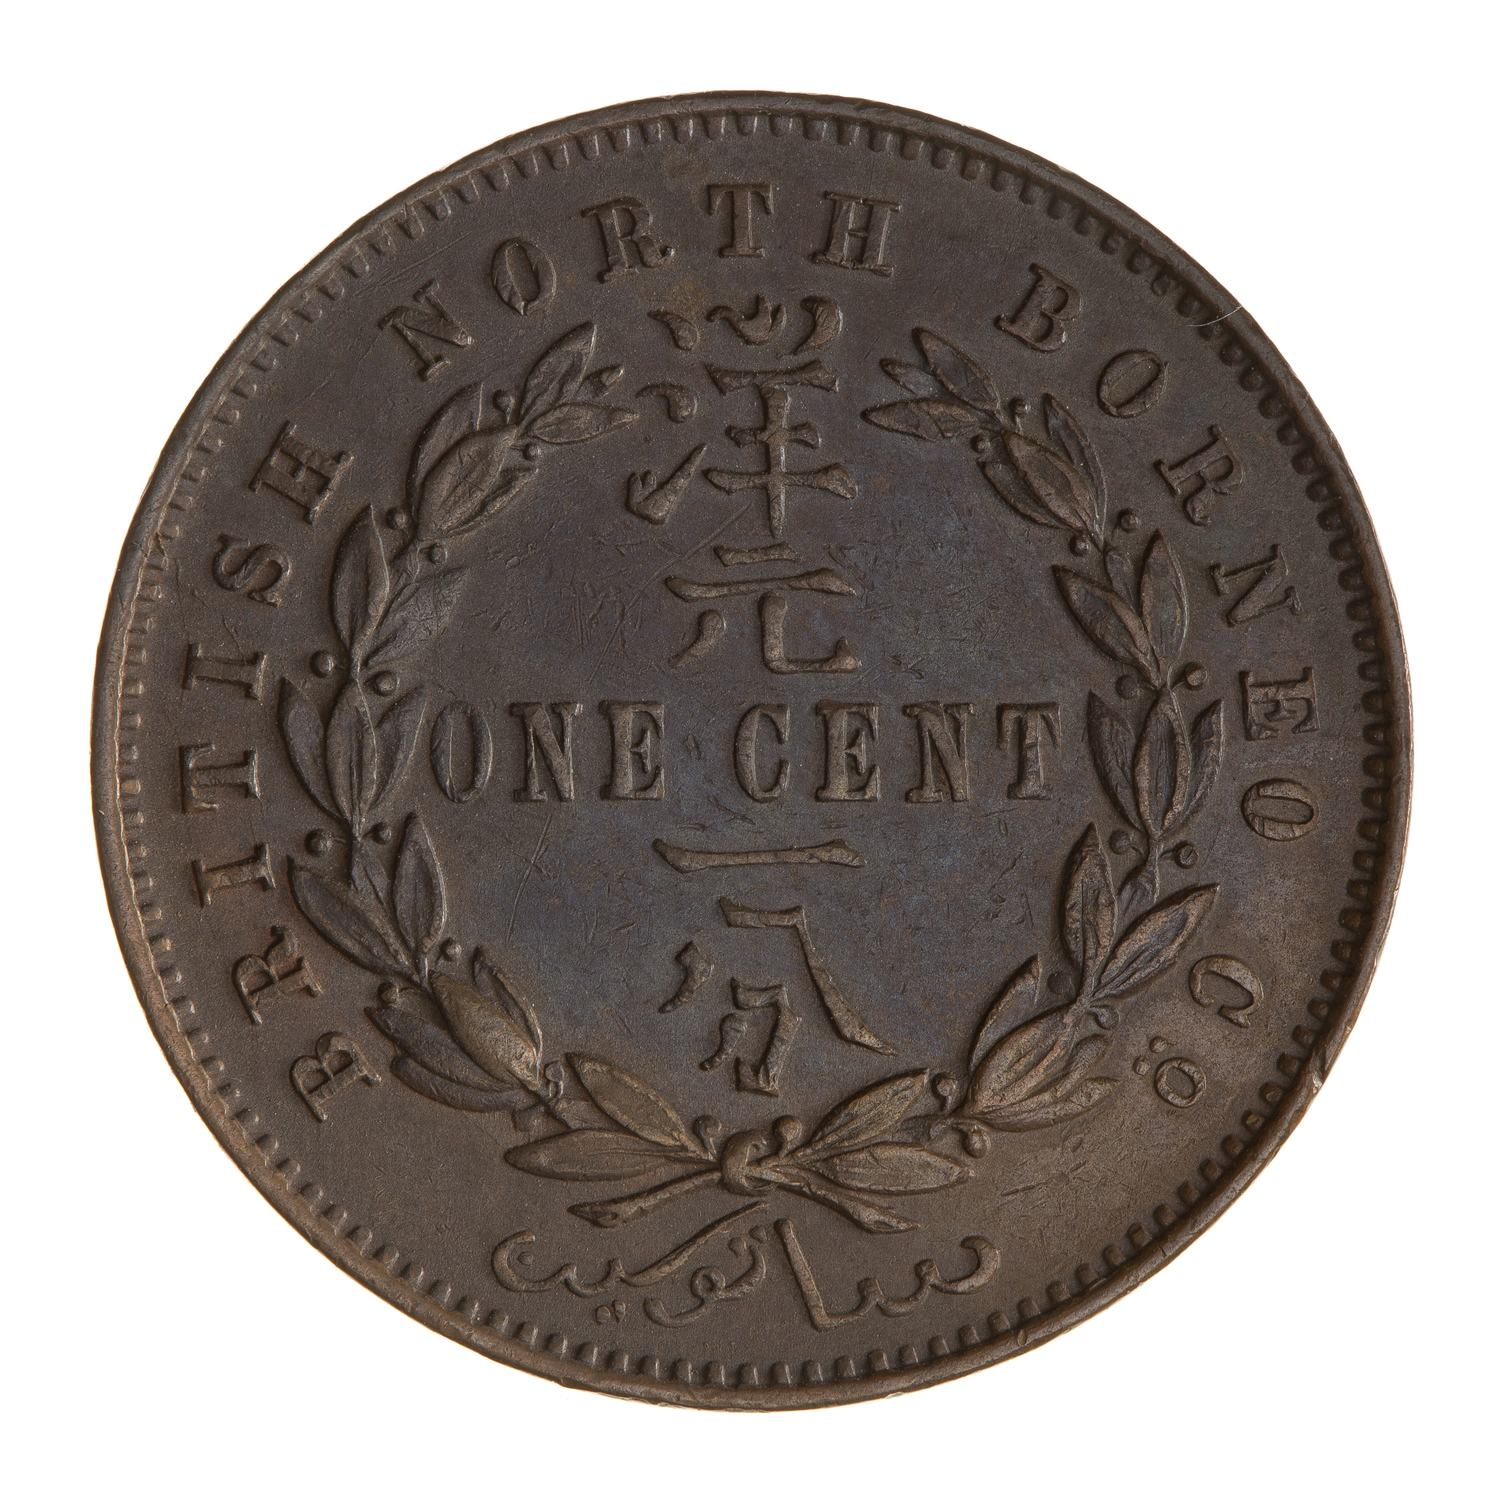 One Cent: Photo Coin - 1 Cent, British North Borneo Company, 1887